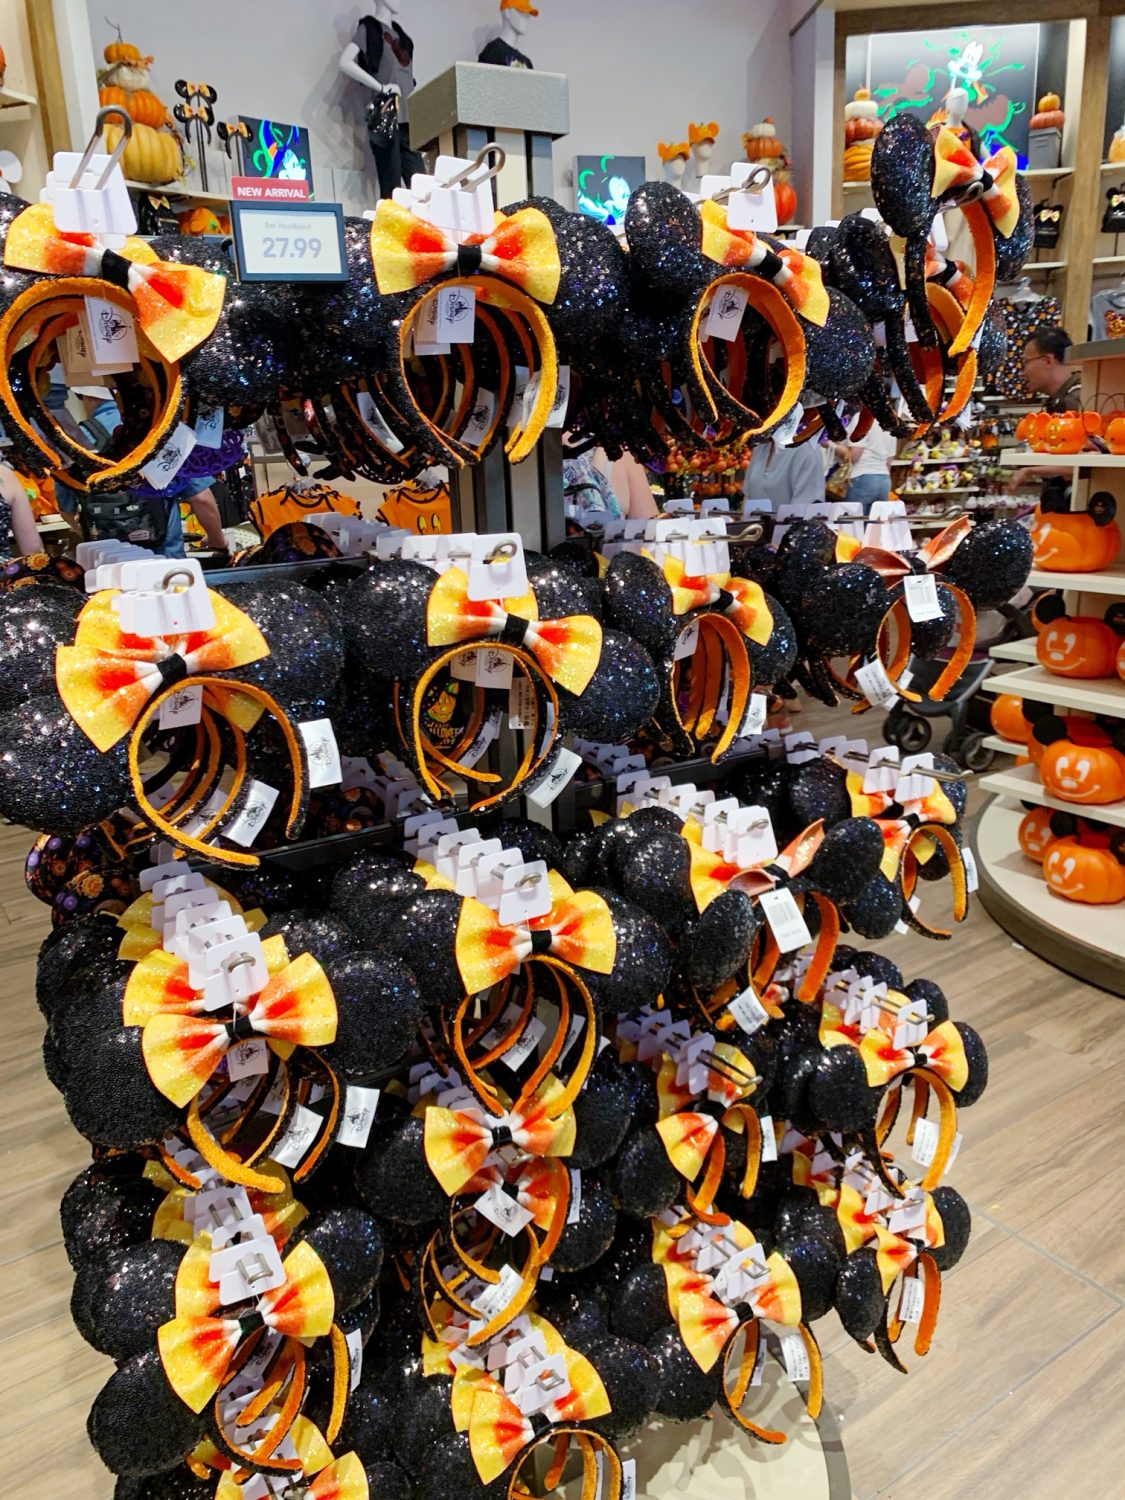 Mickey Candy Corn Ears | 2019 Disney Halloween Merchandise | Disney World | World of Disney Halloween Merchandise